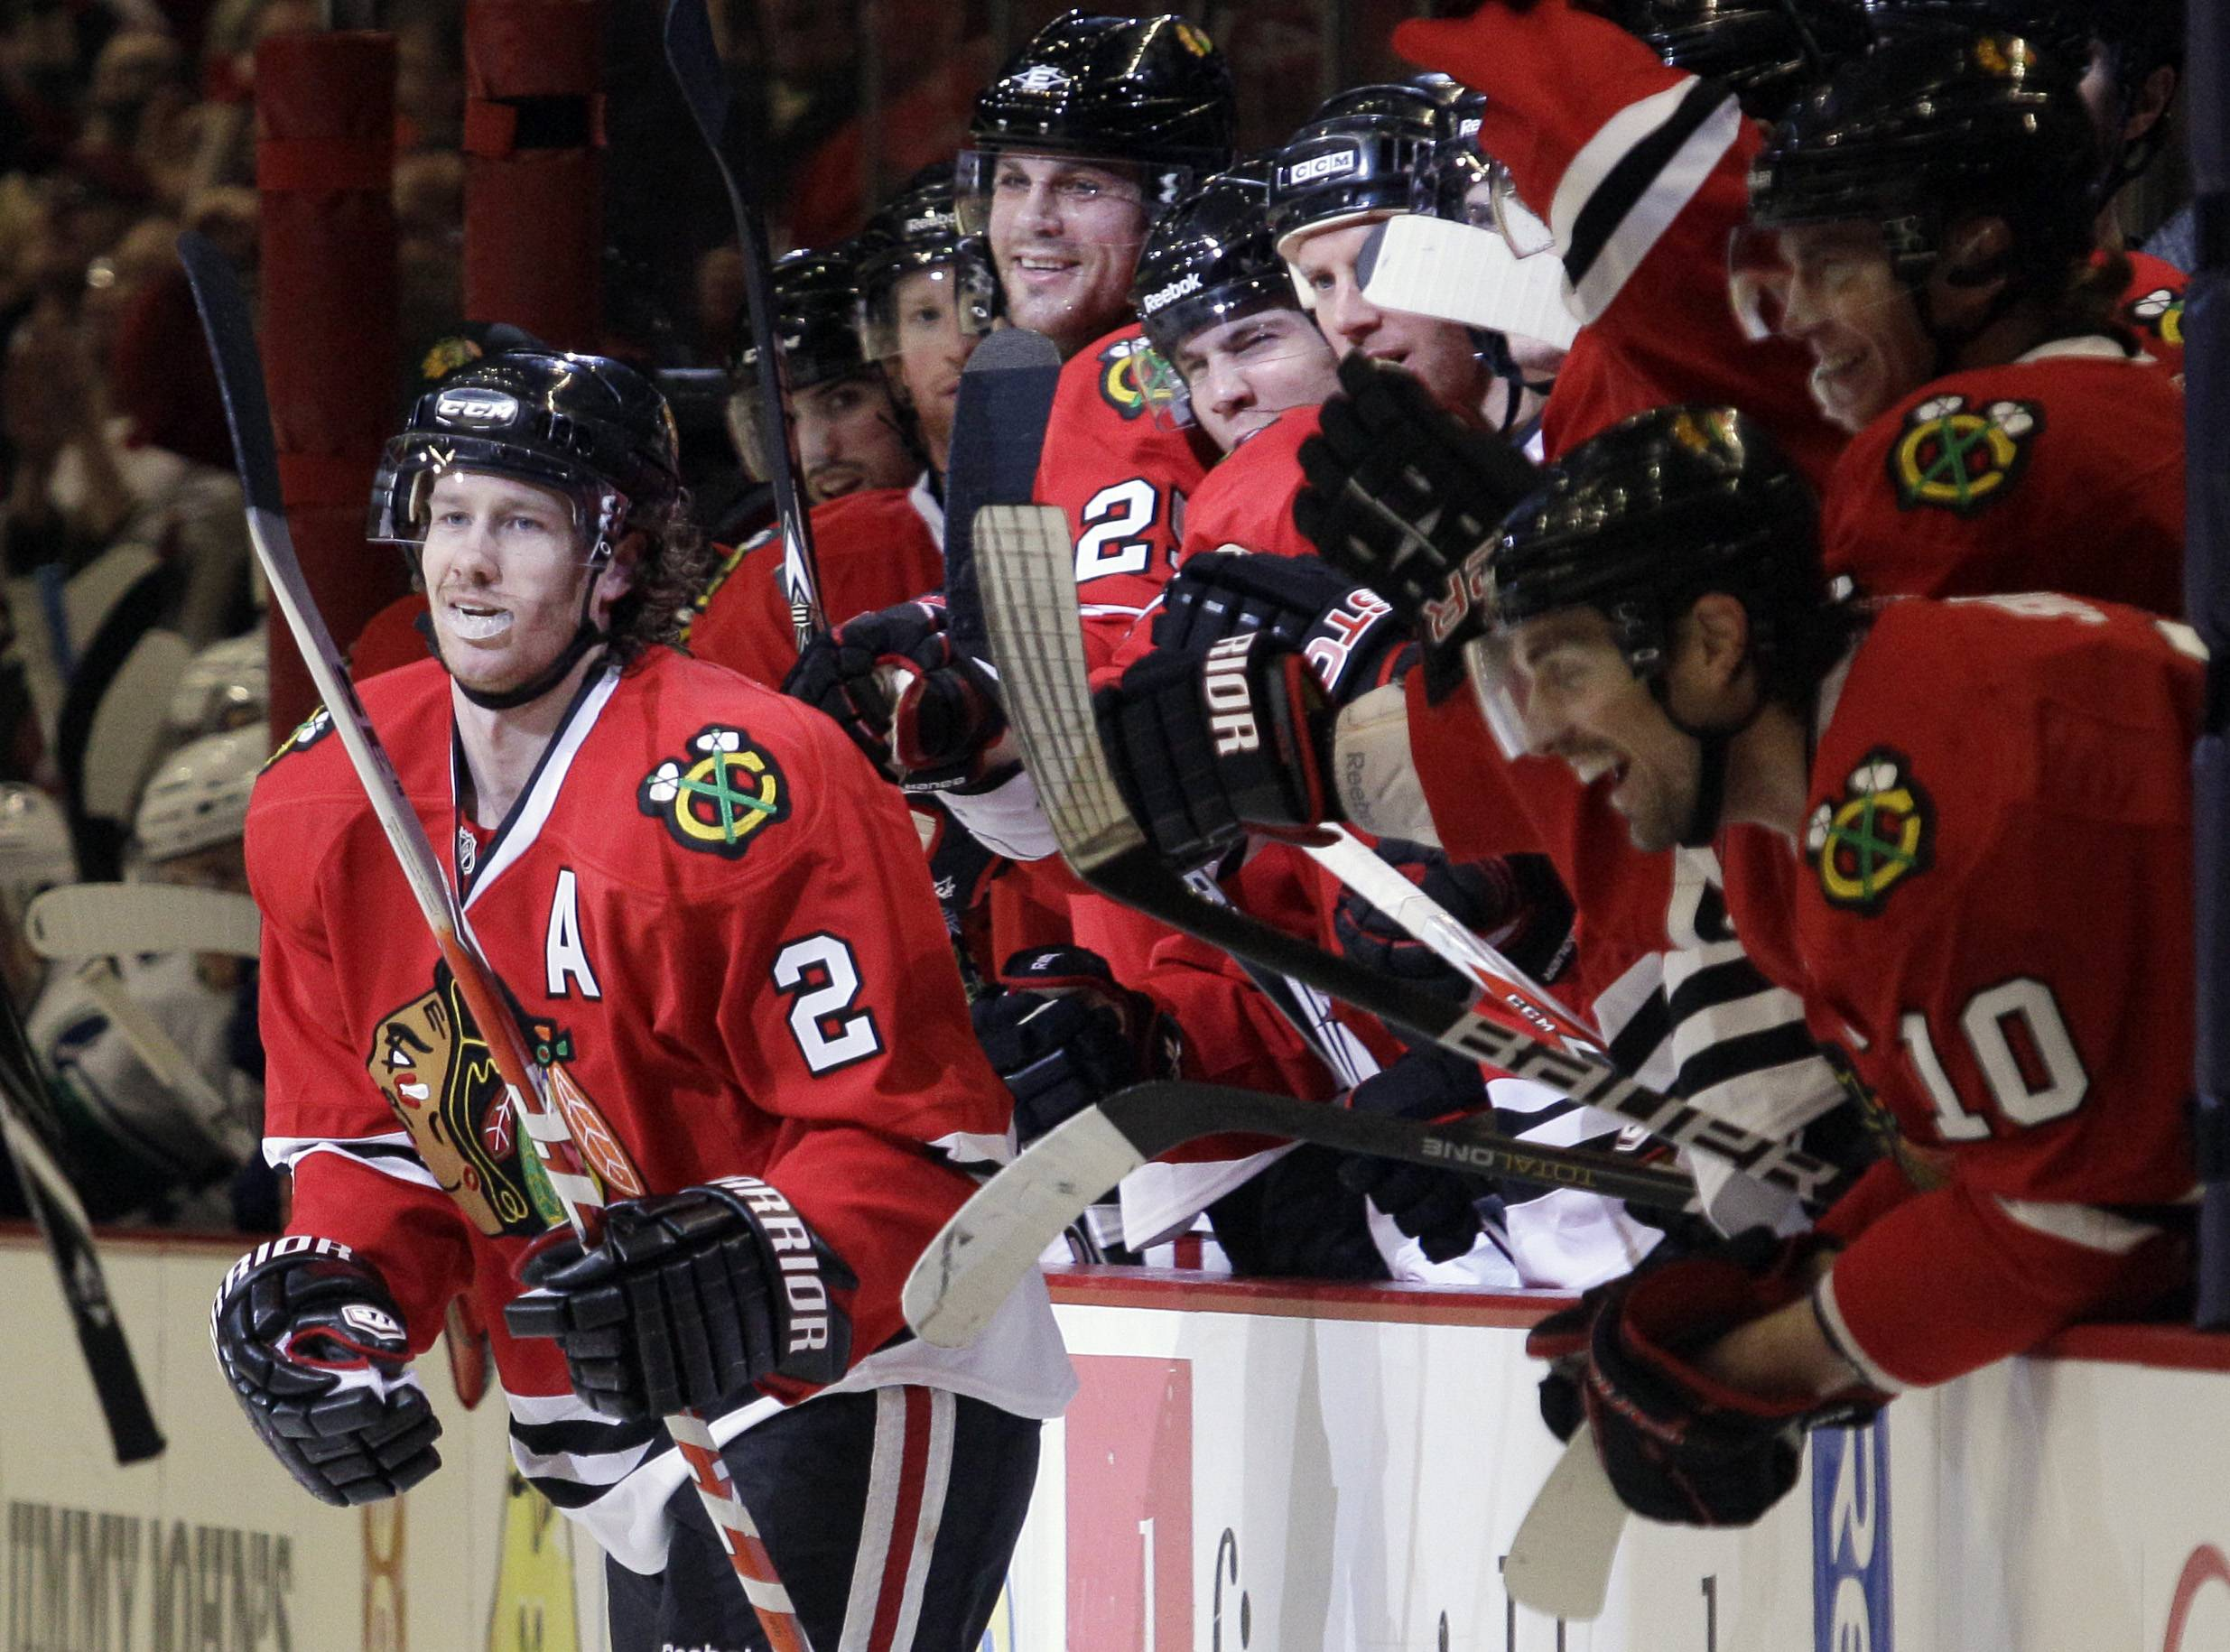 Duncan Keith celebrates his second-period goal with his teammates in Game 4 against the Vancouver Canucks on Tuesday.